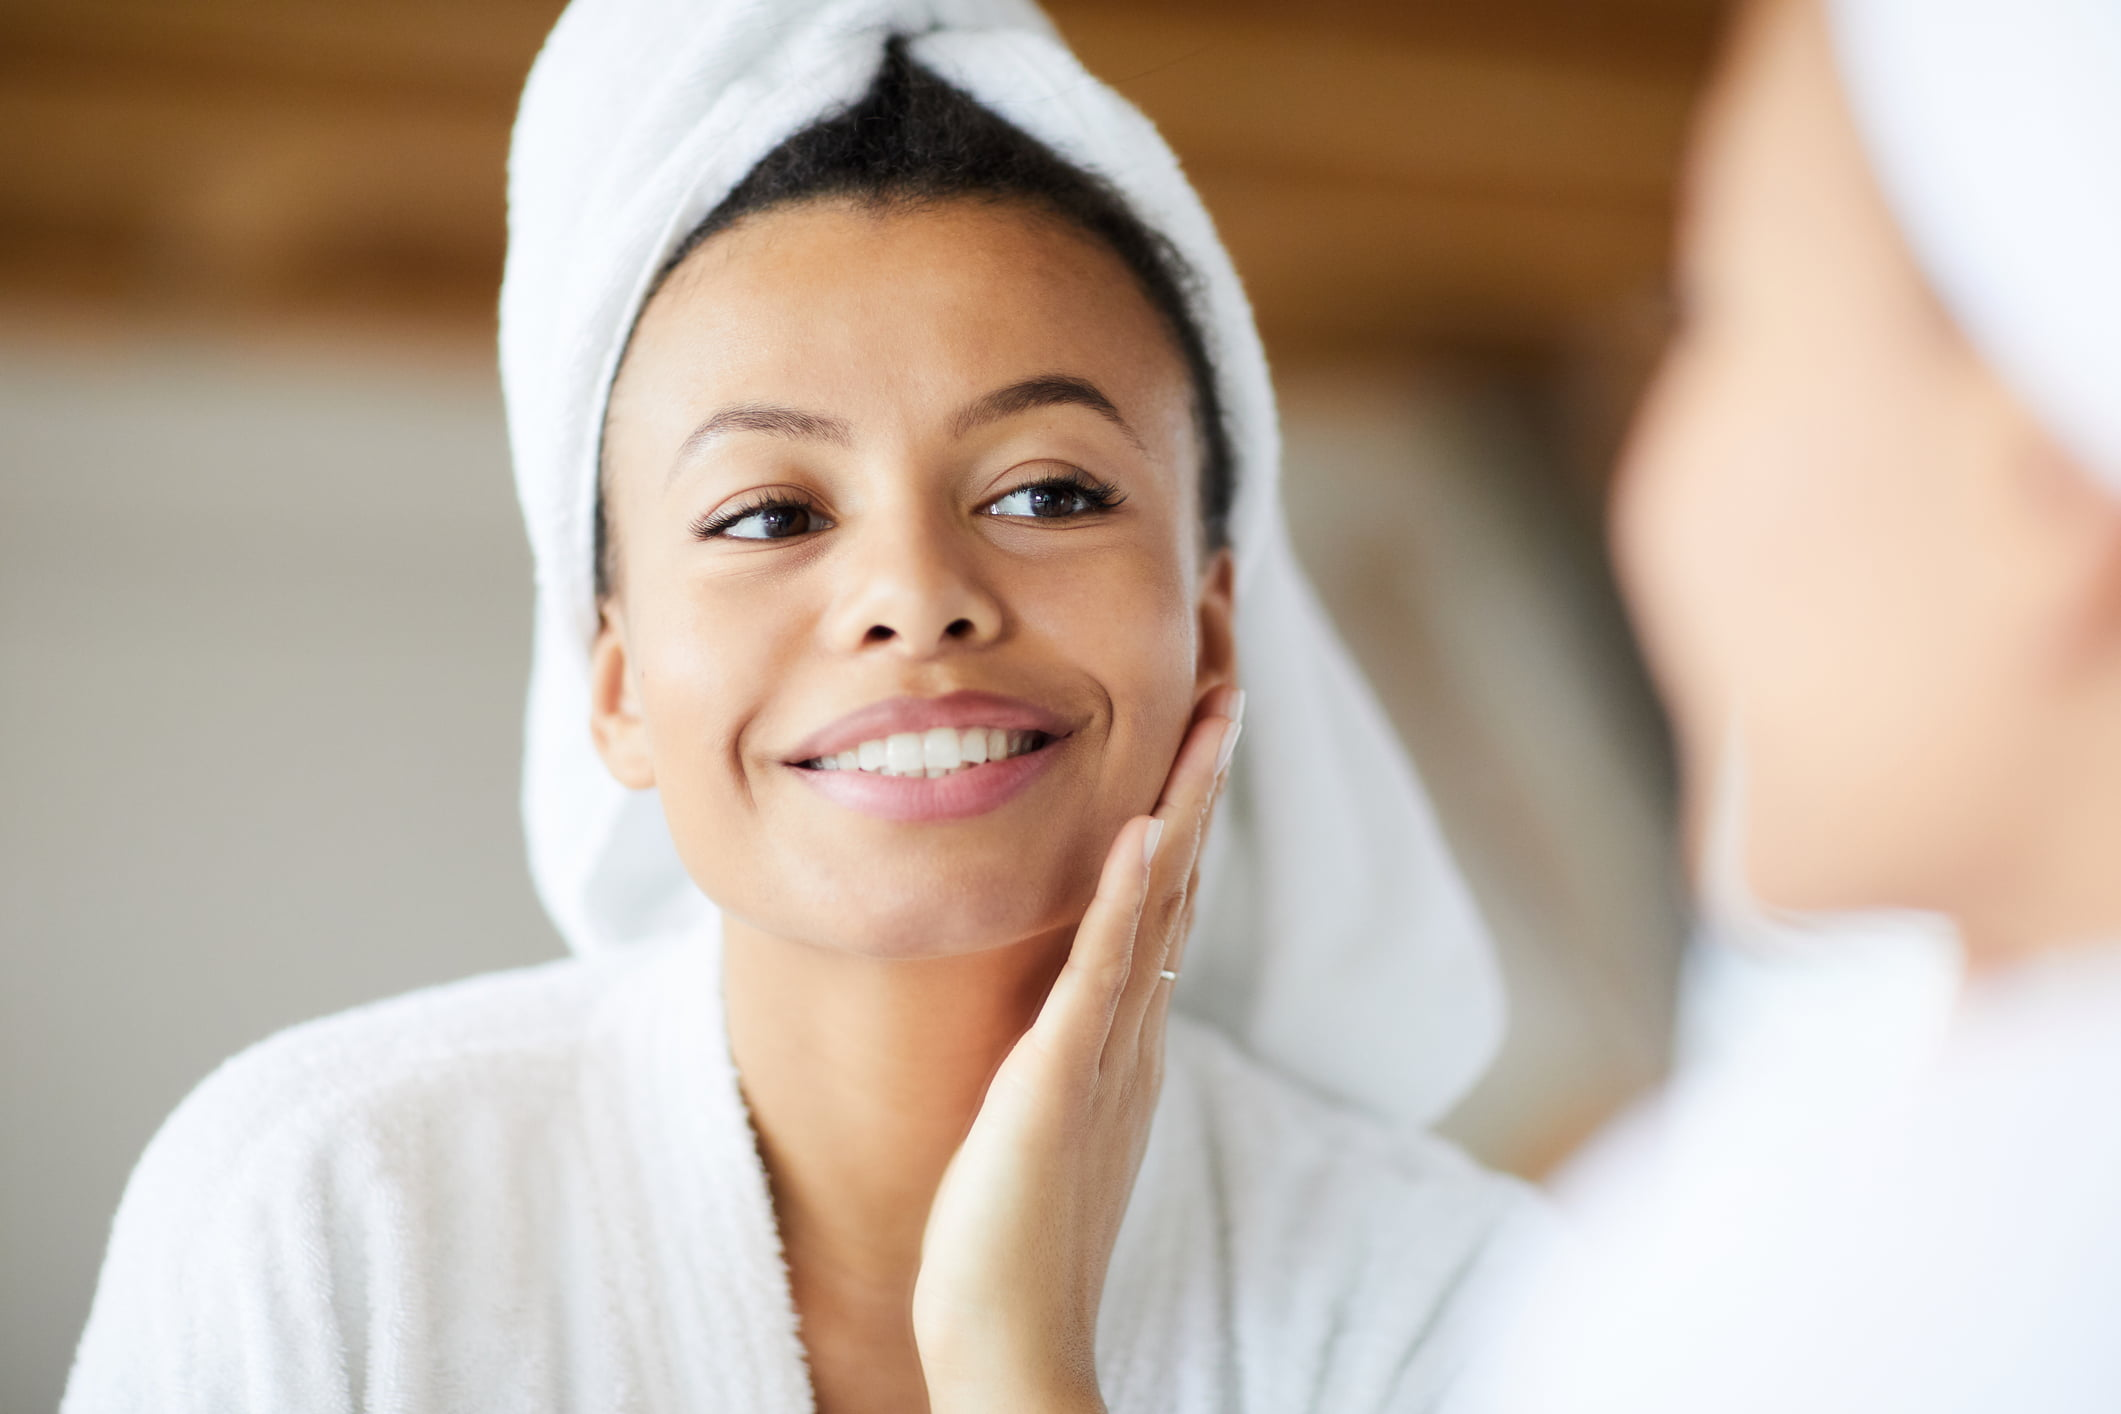 A lady is looking at the mirror and applying skincare products after showering